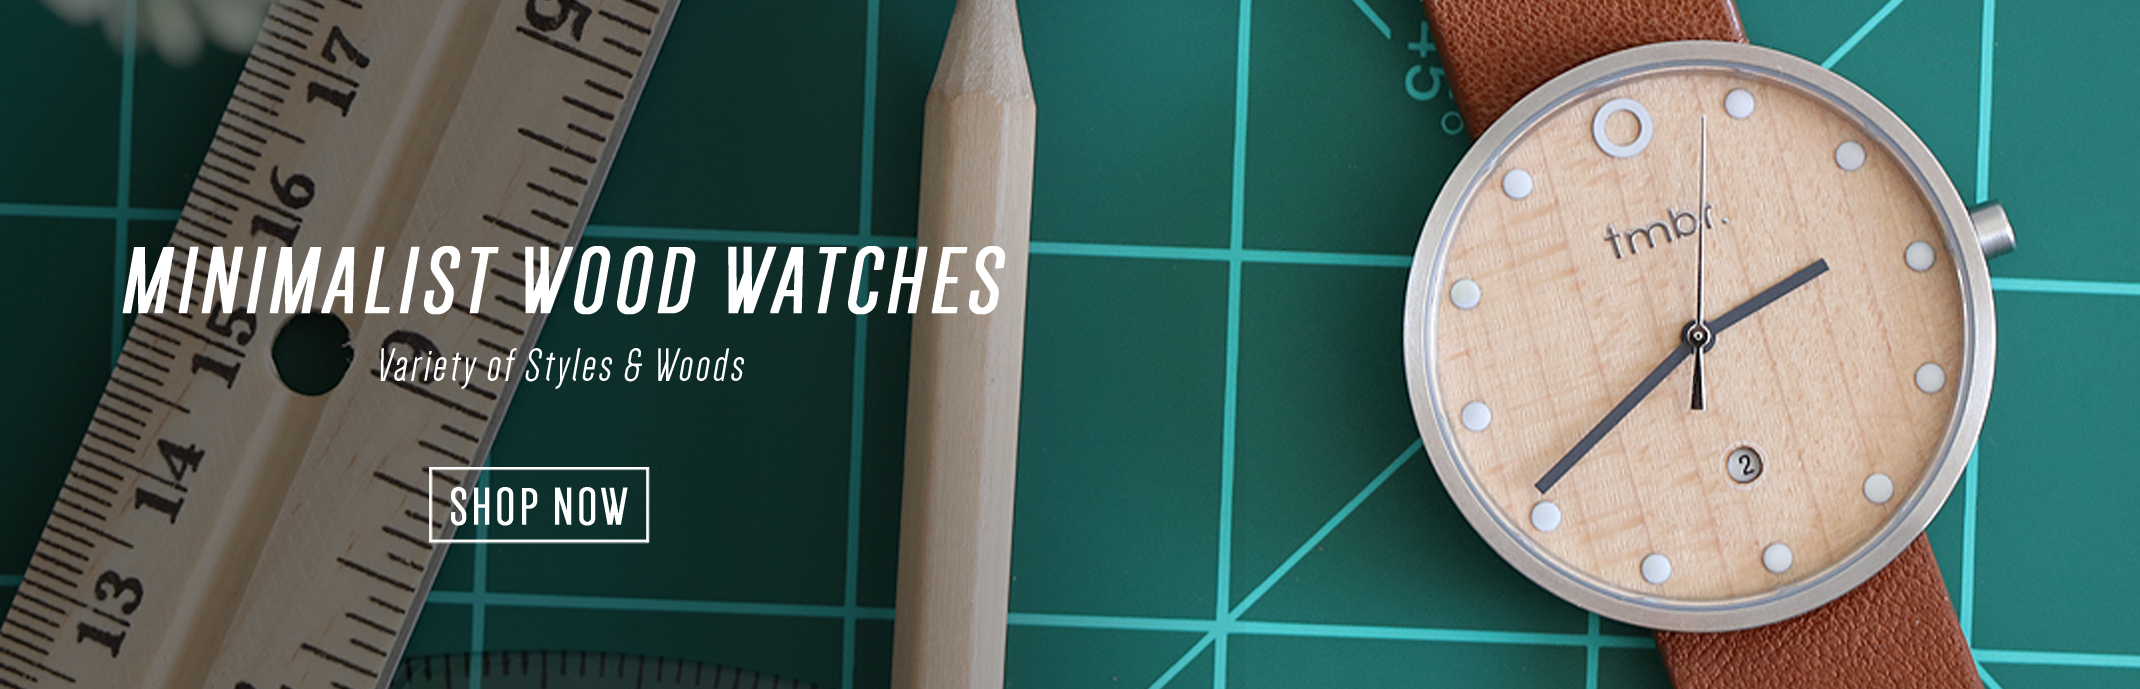 Tmbr. Minimalist Wood Watches For Men and Women